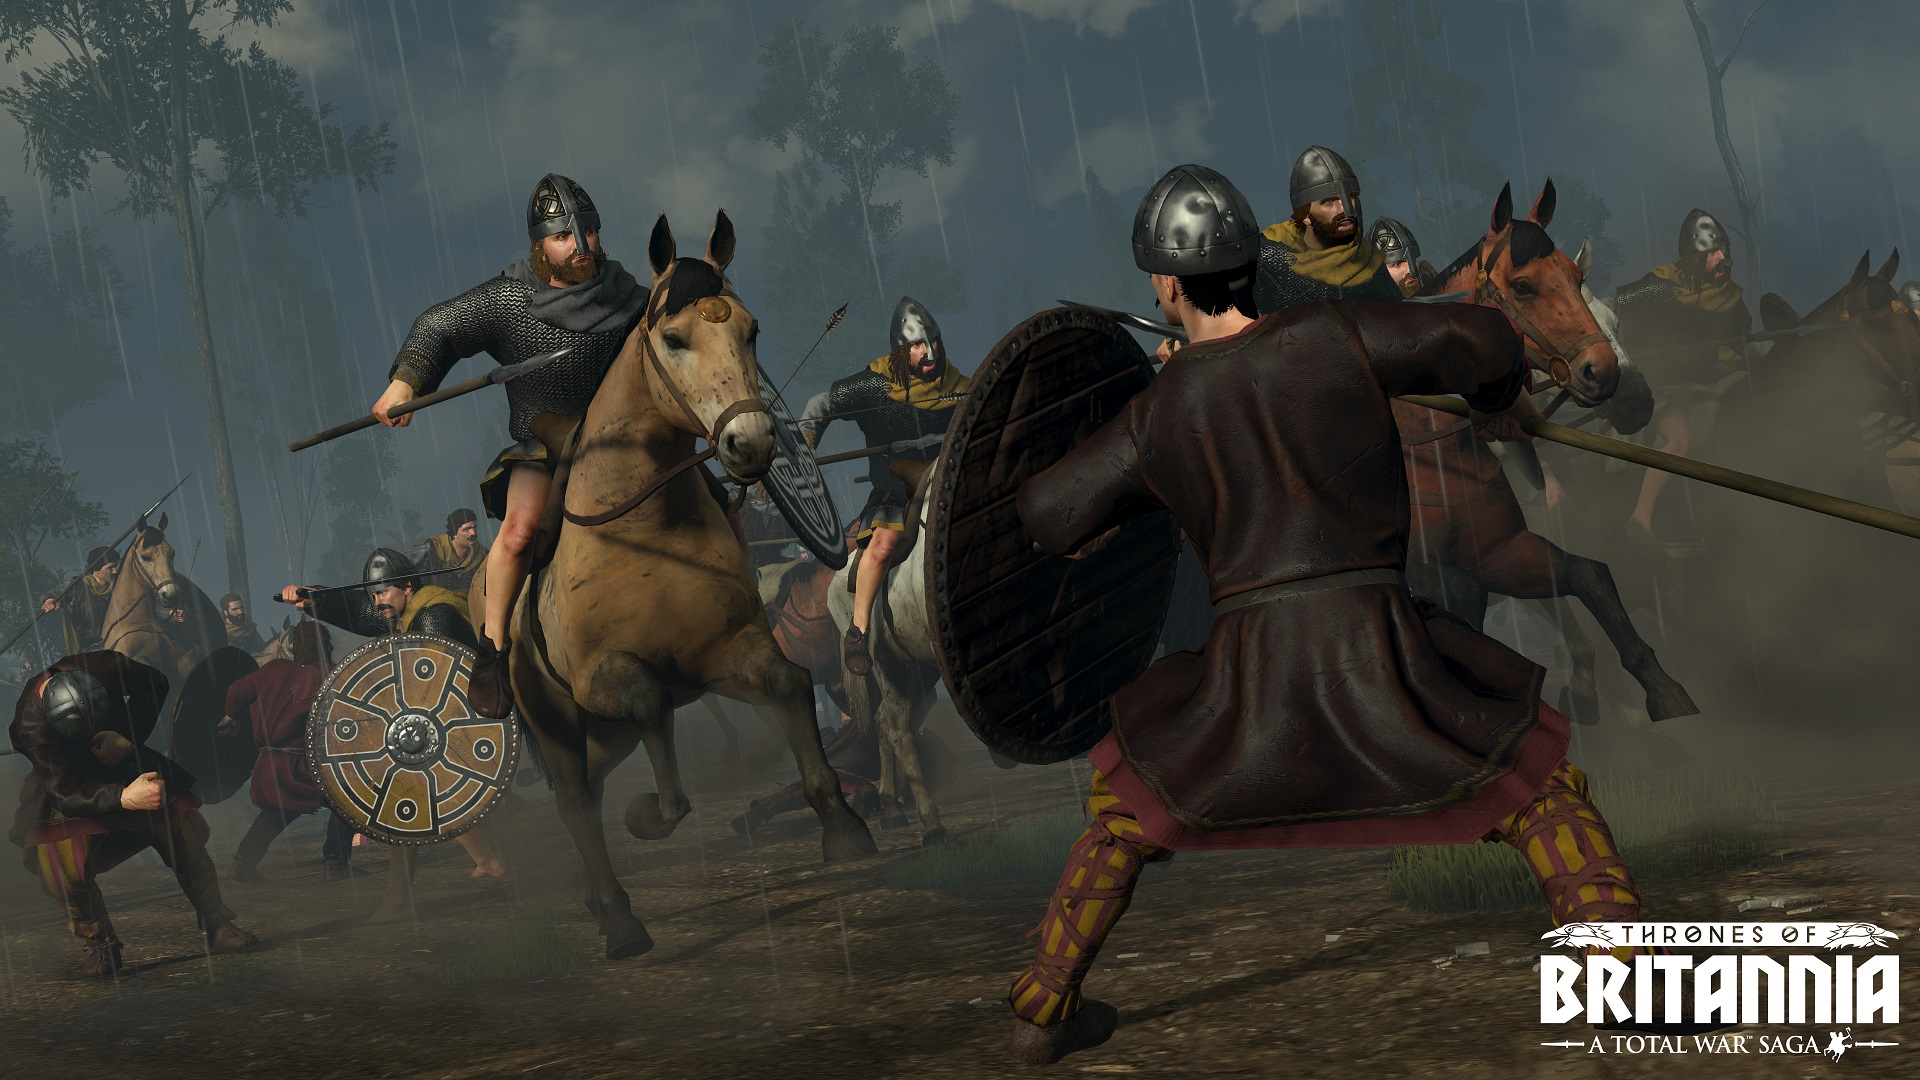 total war saga: thrones of britannia release date